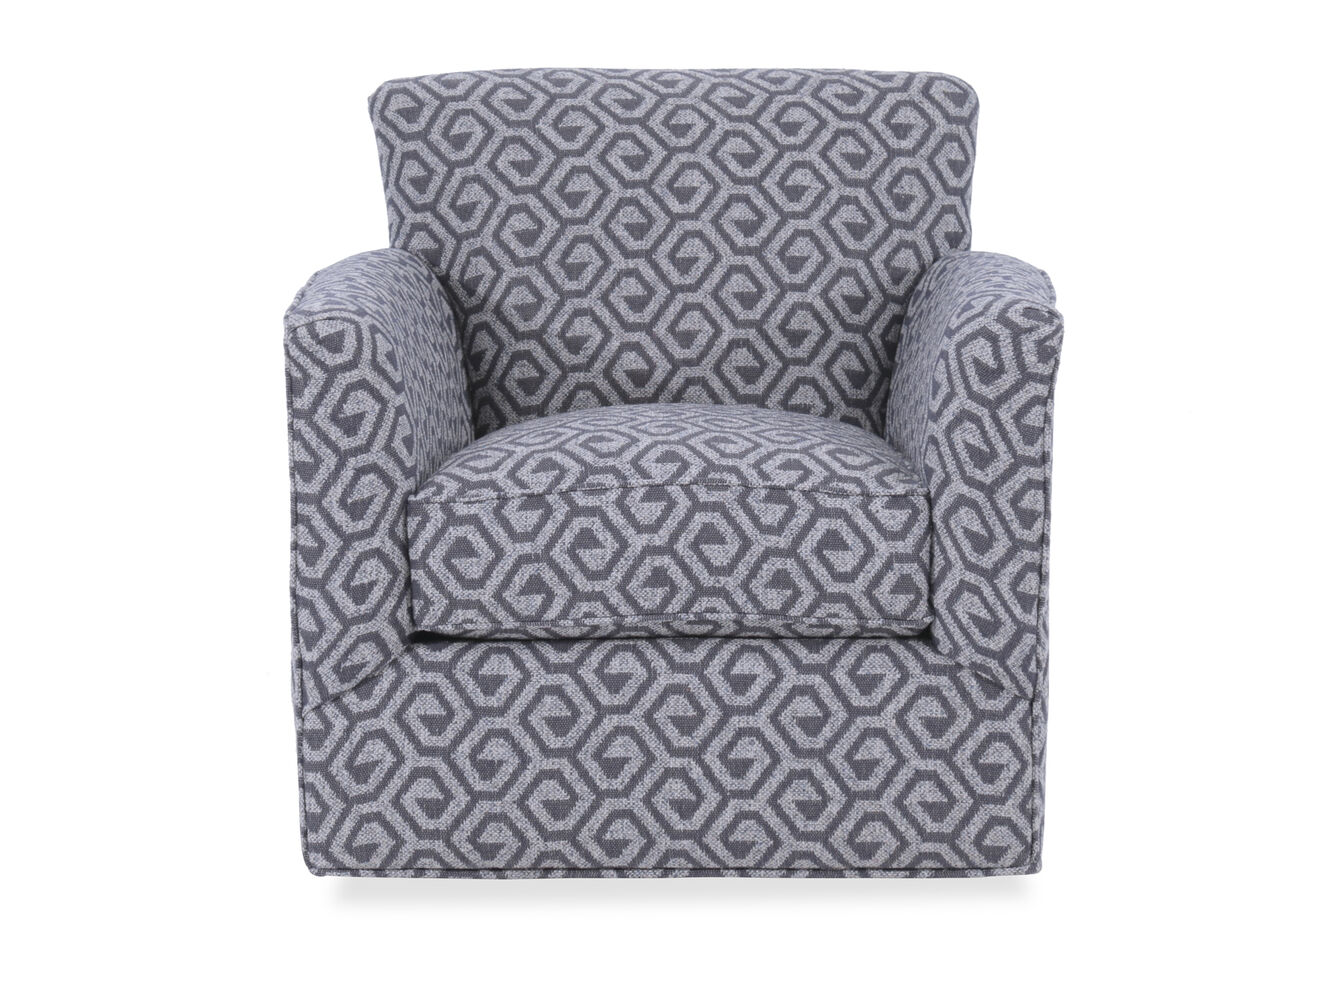 Images Geometric Patterned Contemporary 34 Swivel Chair In Gray